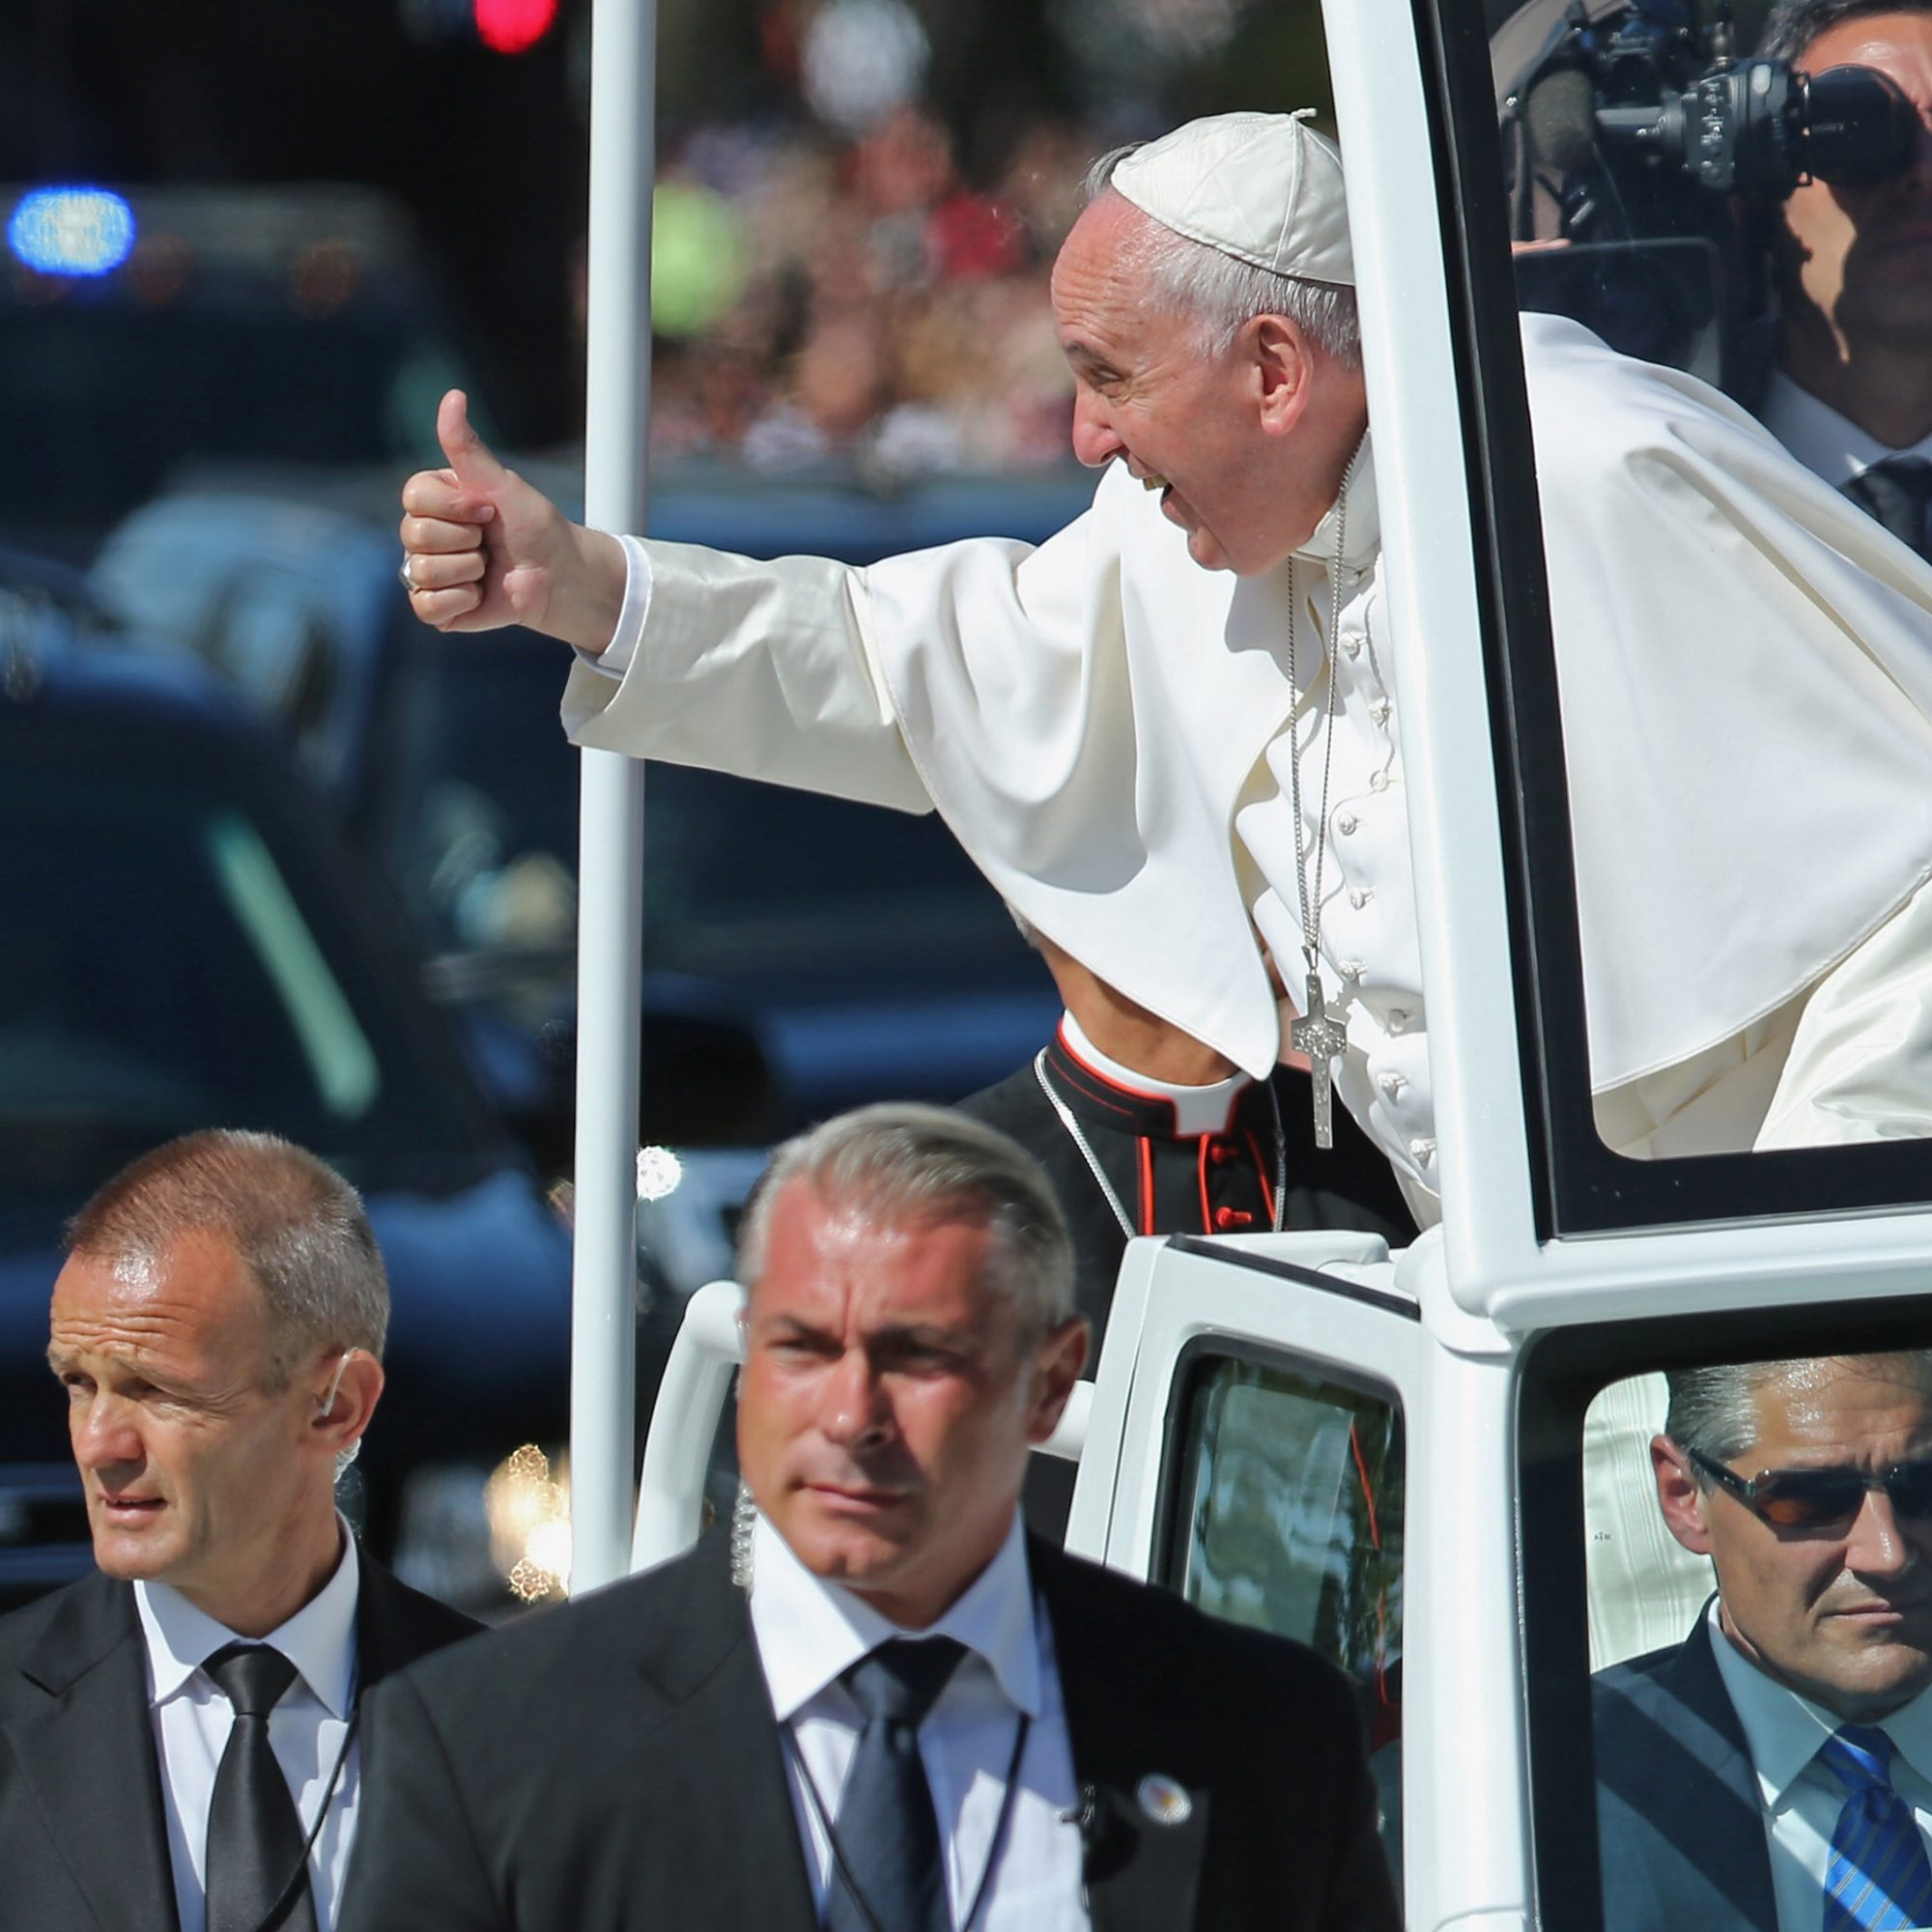 FWX UBER HILICOPTERS FOR THE POPES VISIT